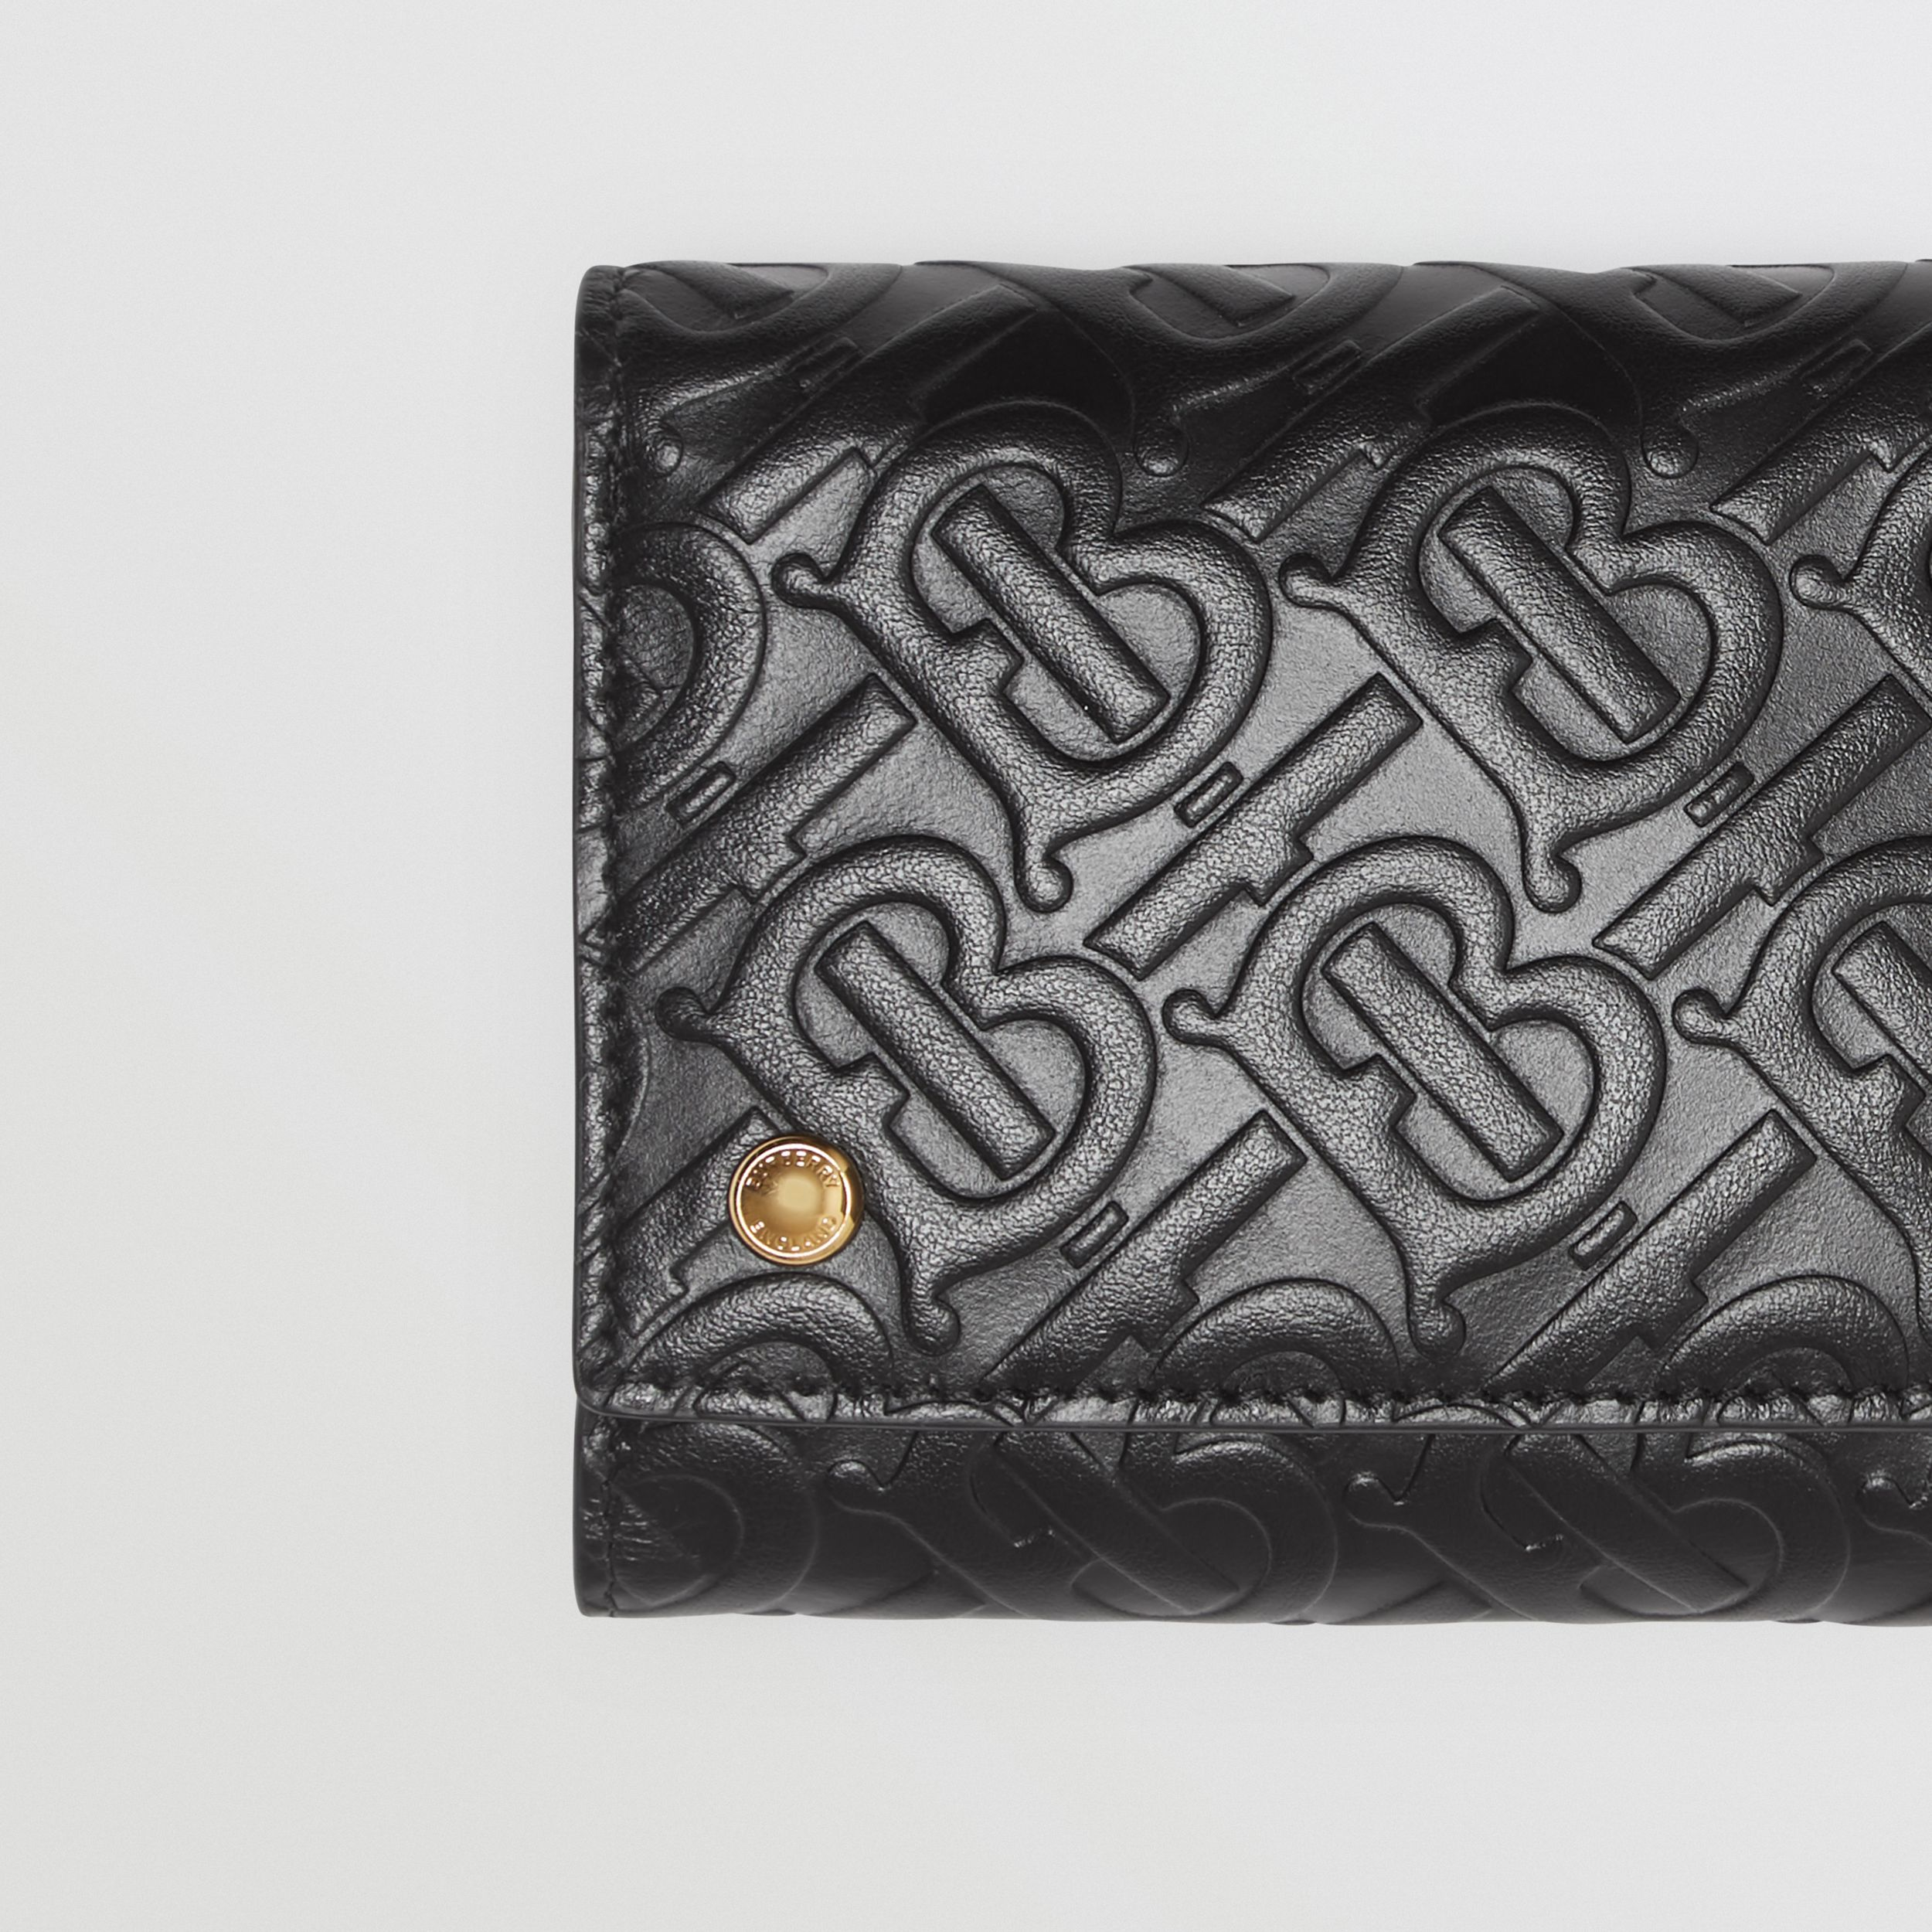 Small Monogram Leather Folding Wallet in Black - Men | Burberry - 2